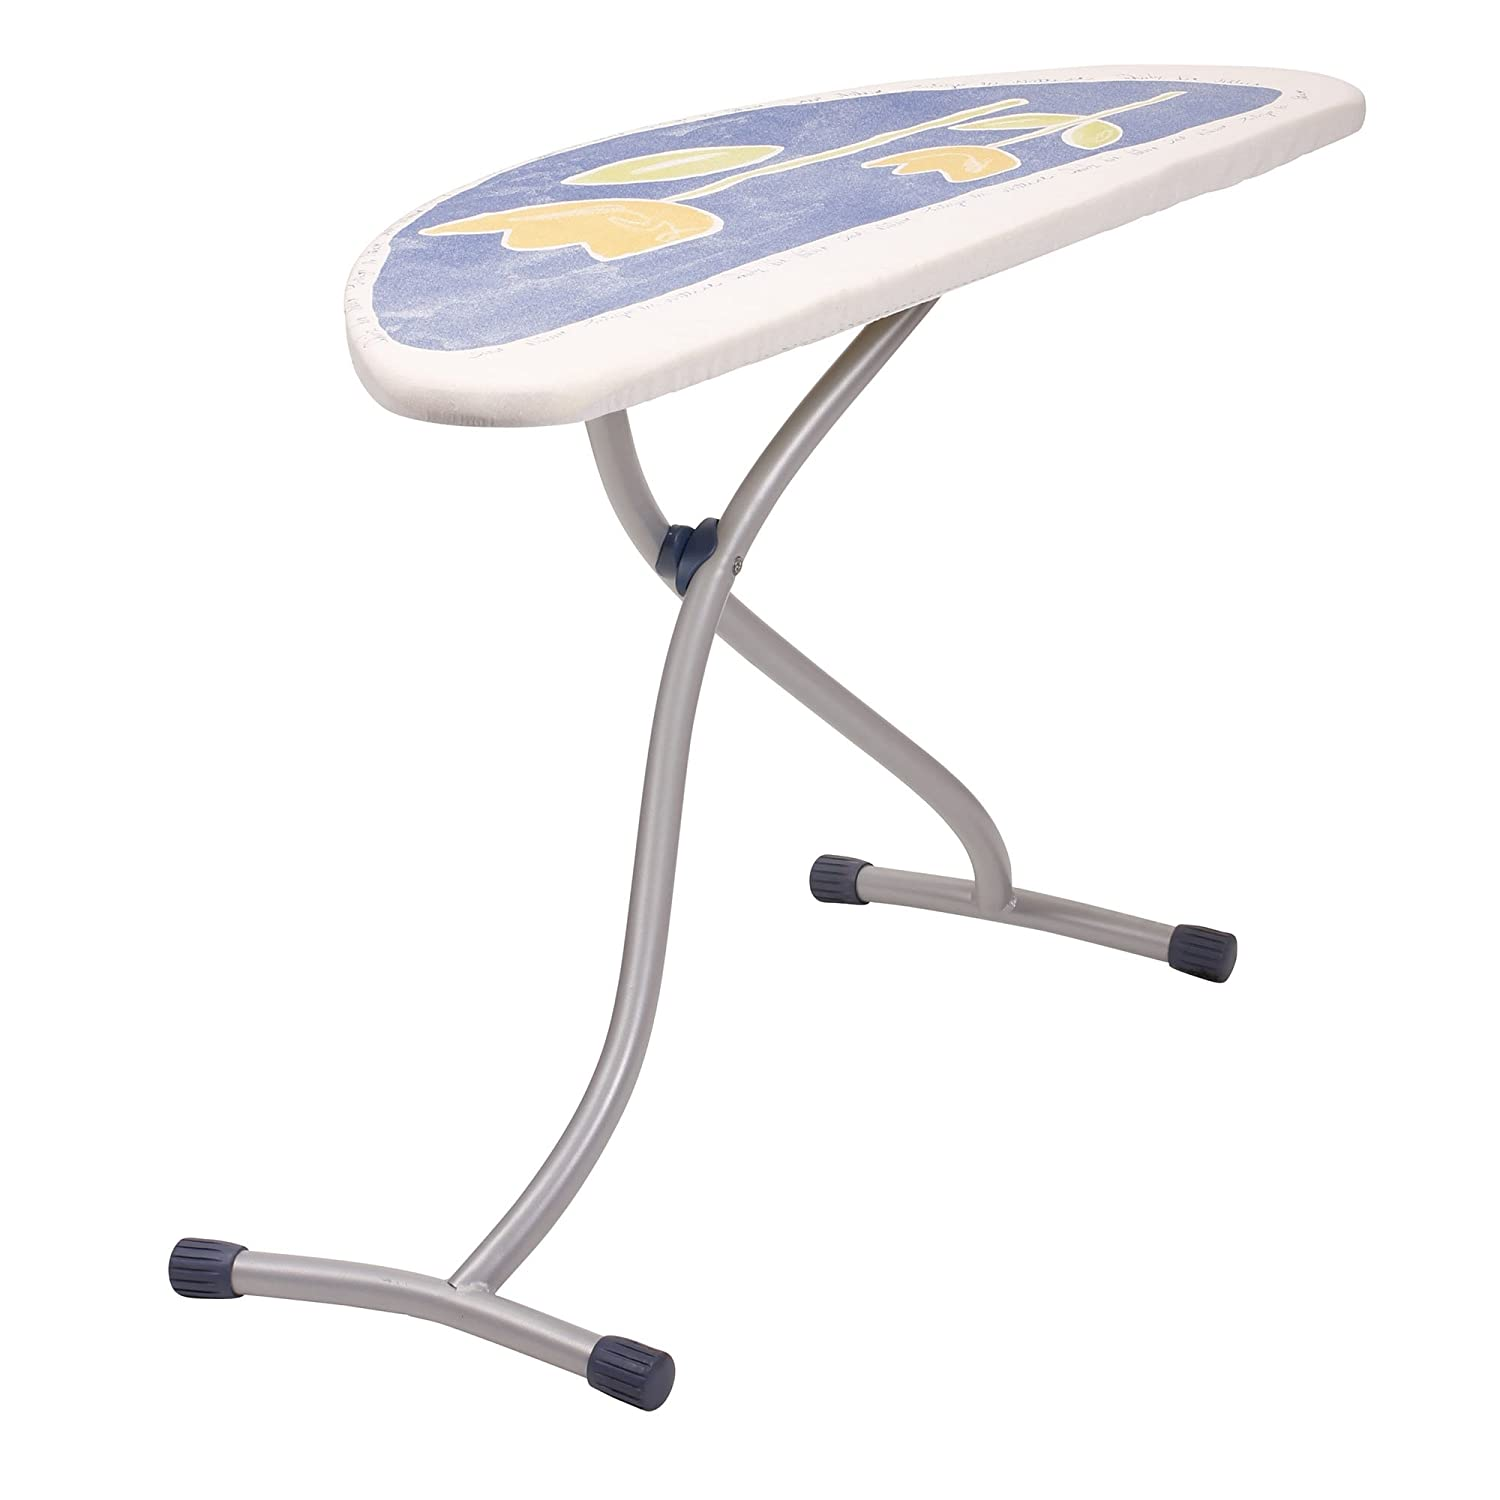 Household Essentials Mega Top 4-Leg Aluminum Ironing Board with Natural Cotton Cover 971960-1